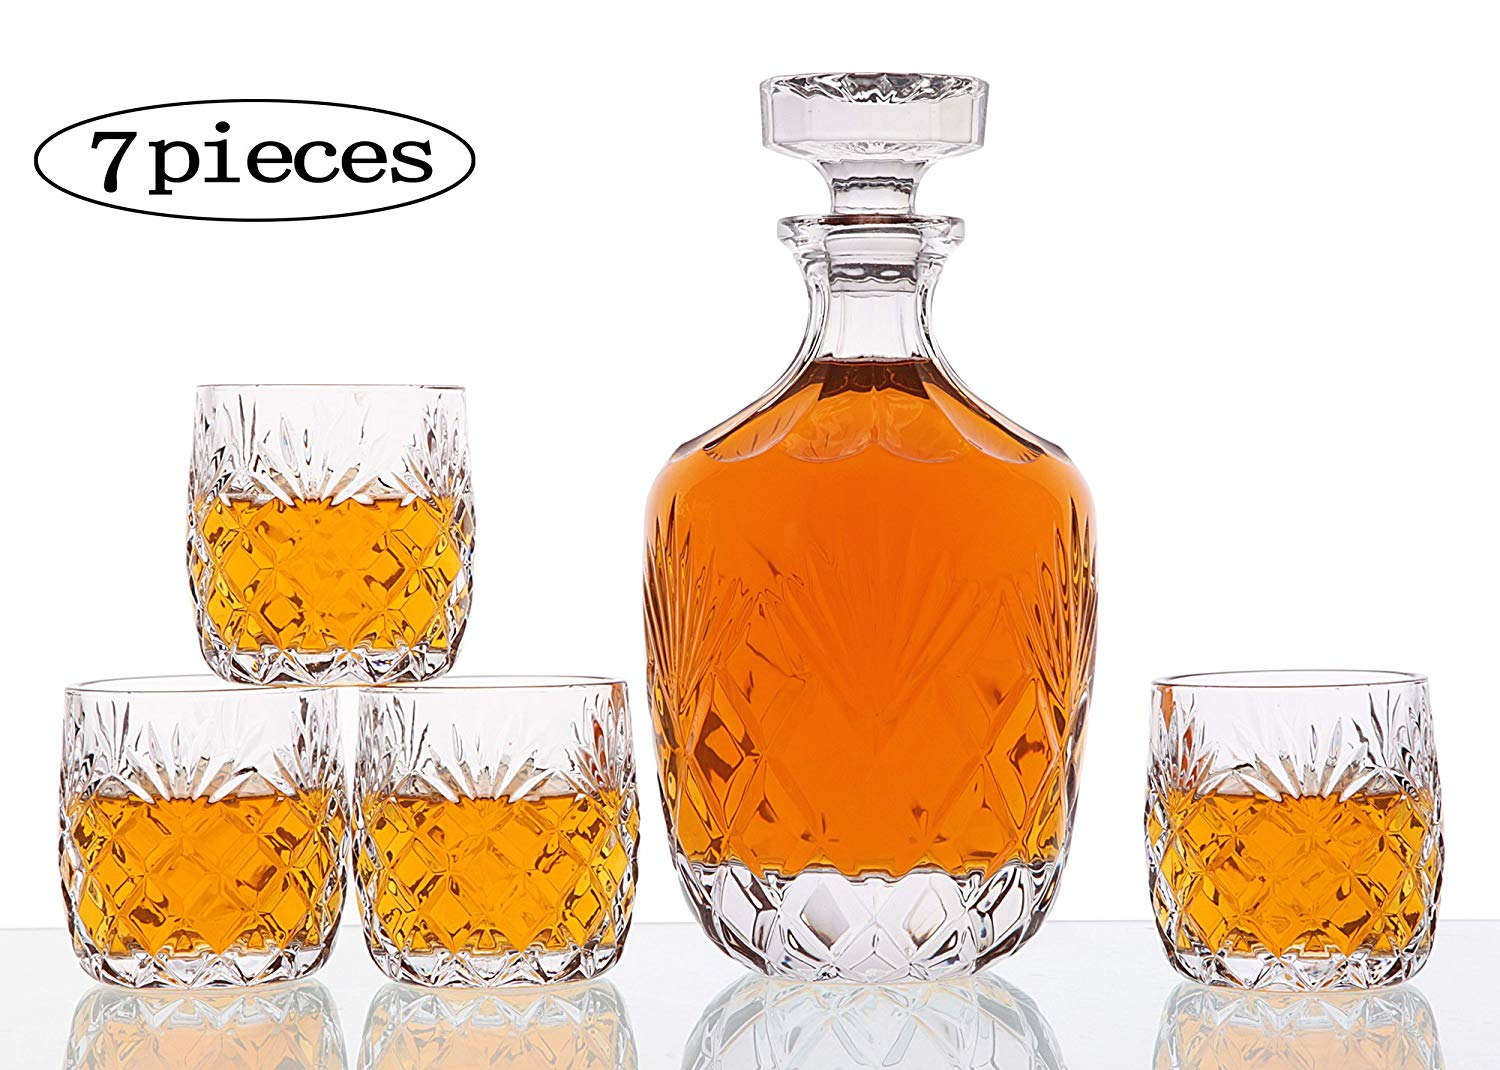 5-Piece Old Fashioned Glasses Whiskey Glass Set with Glass Whiskey Decanter - ,Elegant Whiskey Decanter with Ornate Stopper and 4 Exquisite Cocktail Glasses ,Perfect Holiday Gift